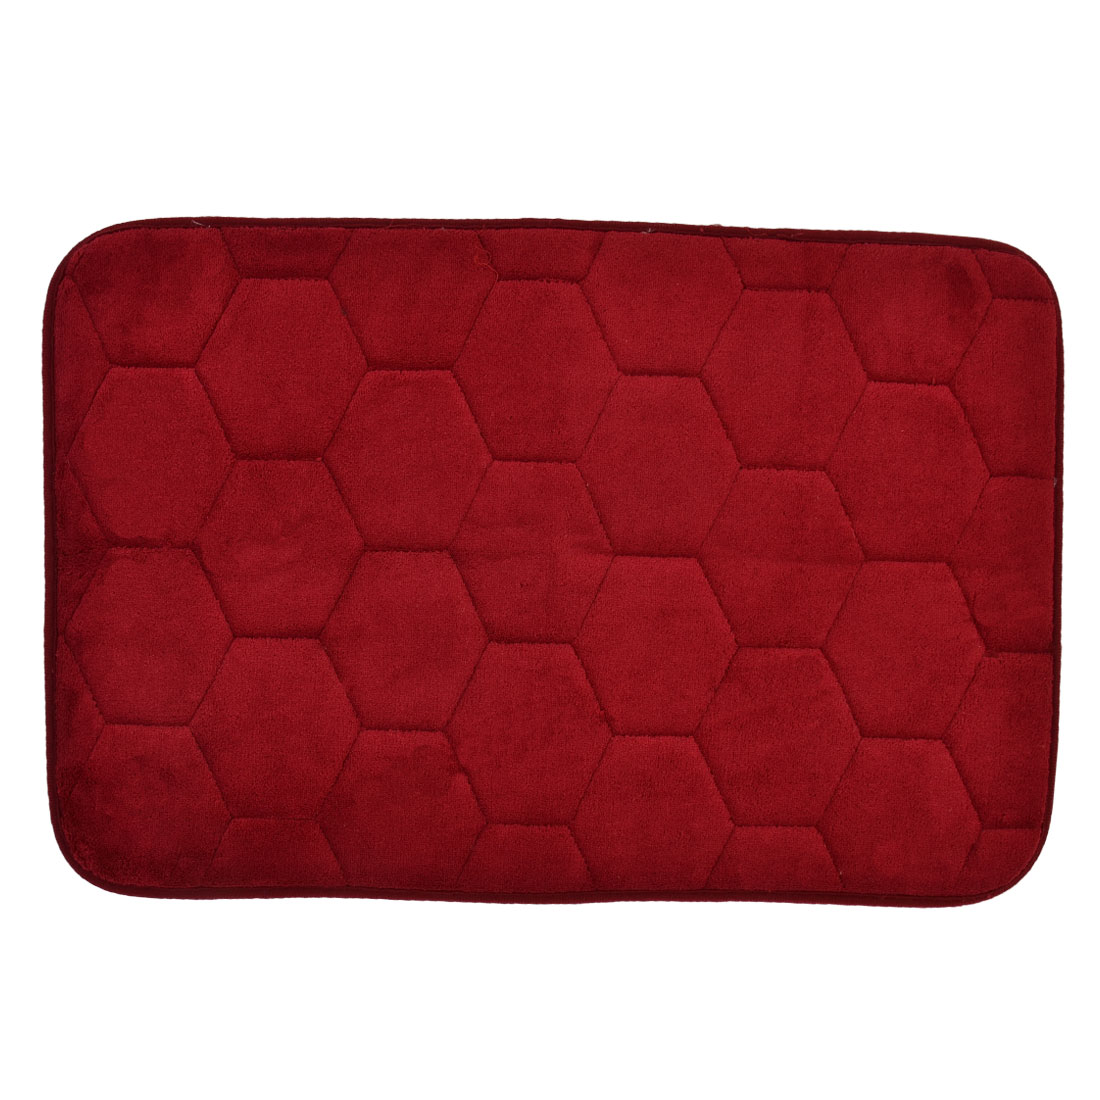 59cm x 40cm Wine Red Polyester Hexagon Pattern Absorbent Non-slip Shower Rug